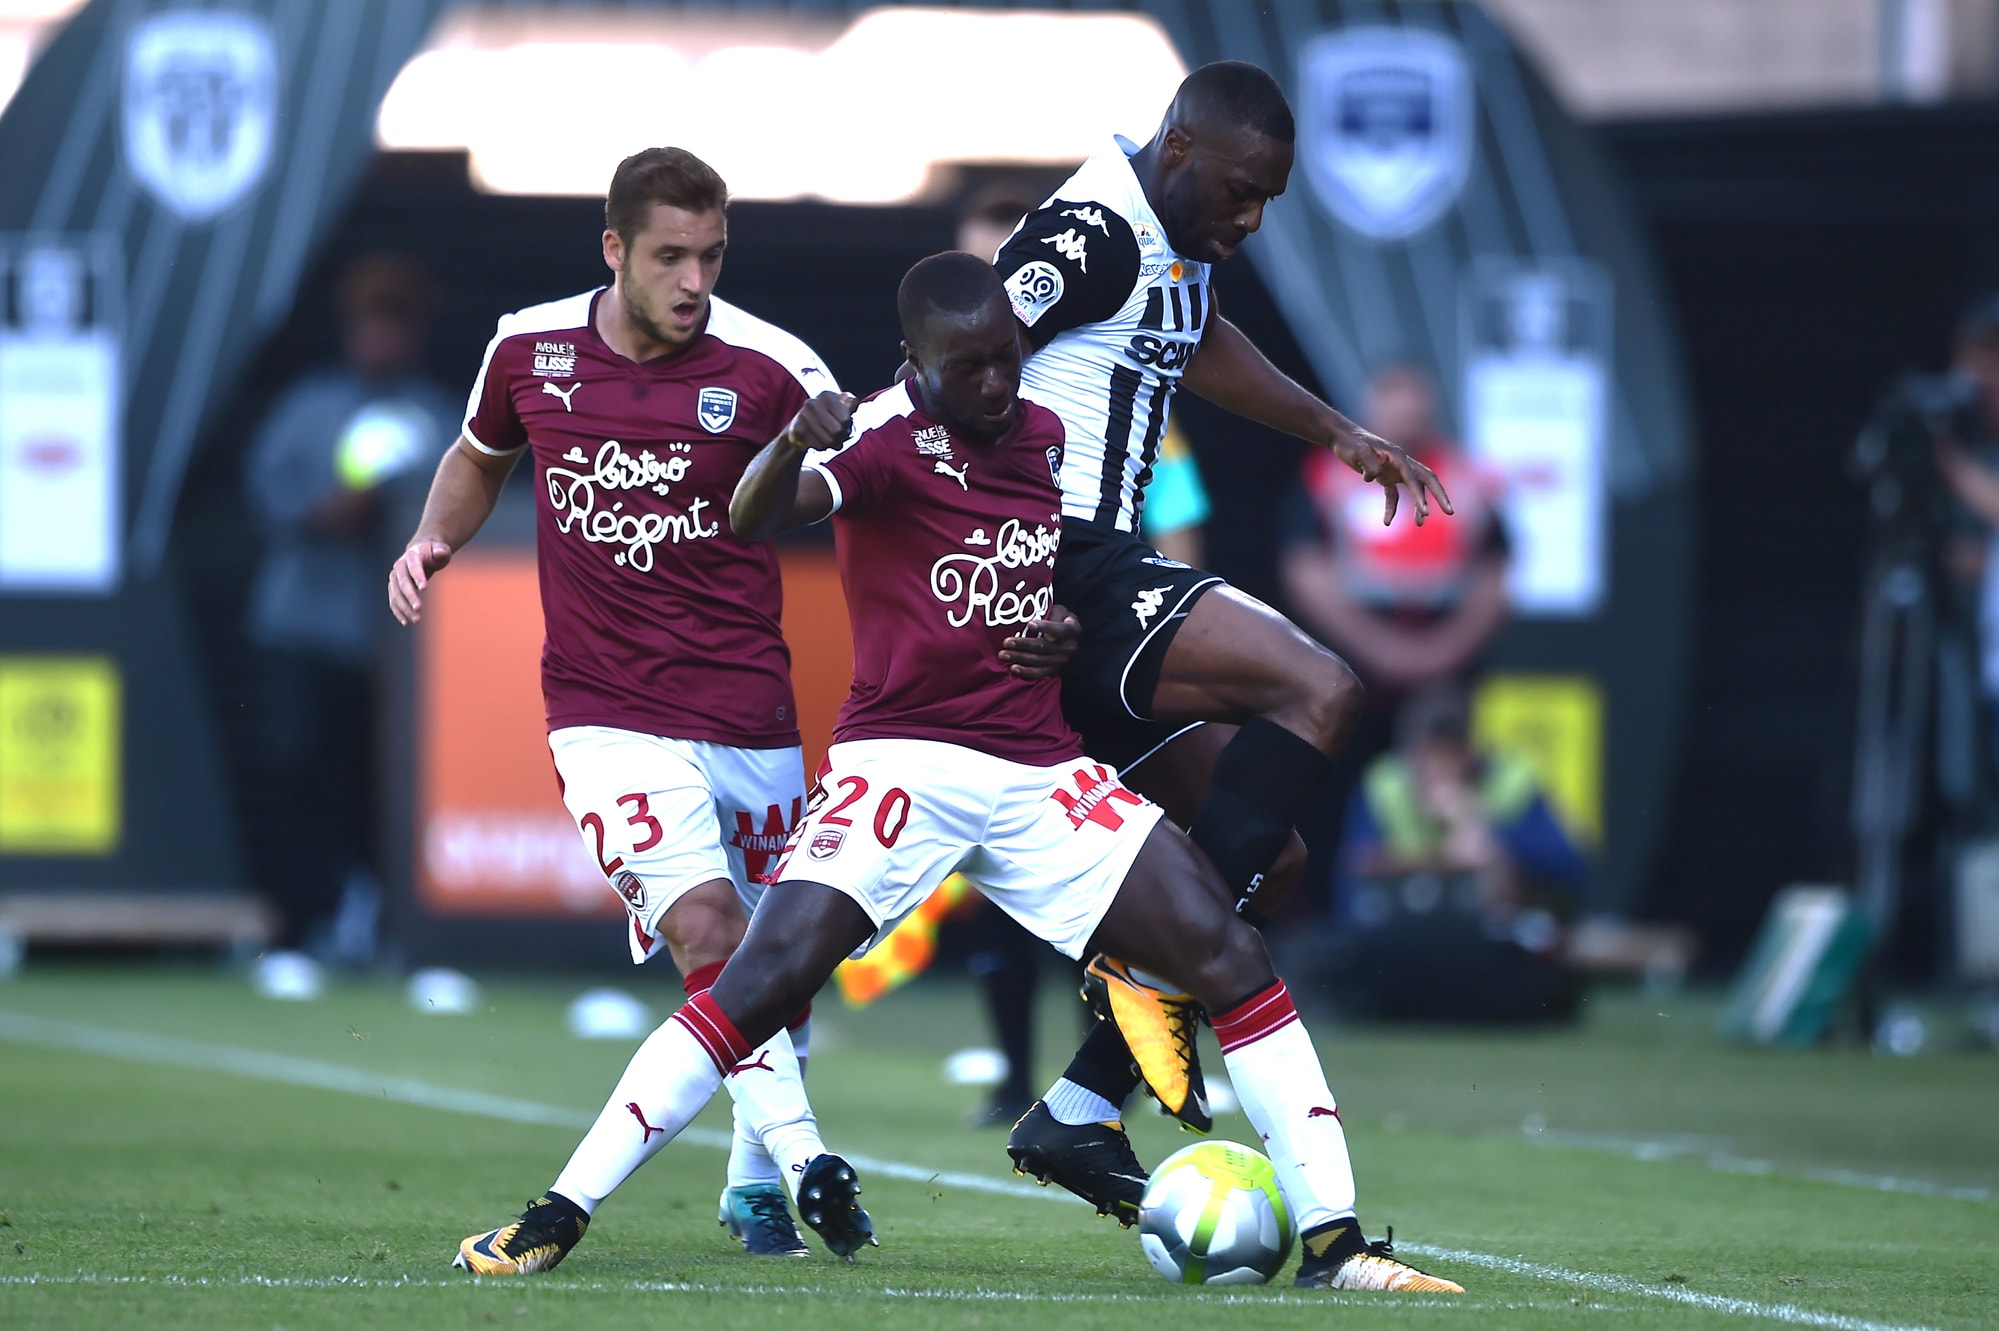 Bordeaux - Angers Betting Tips